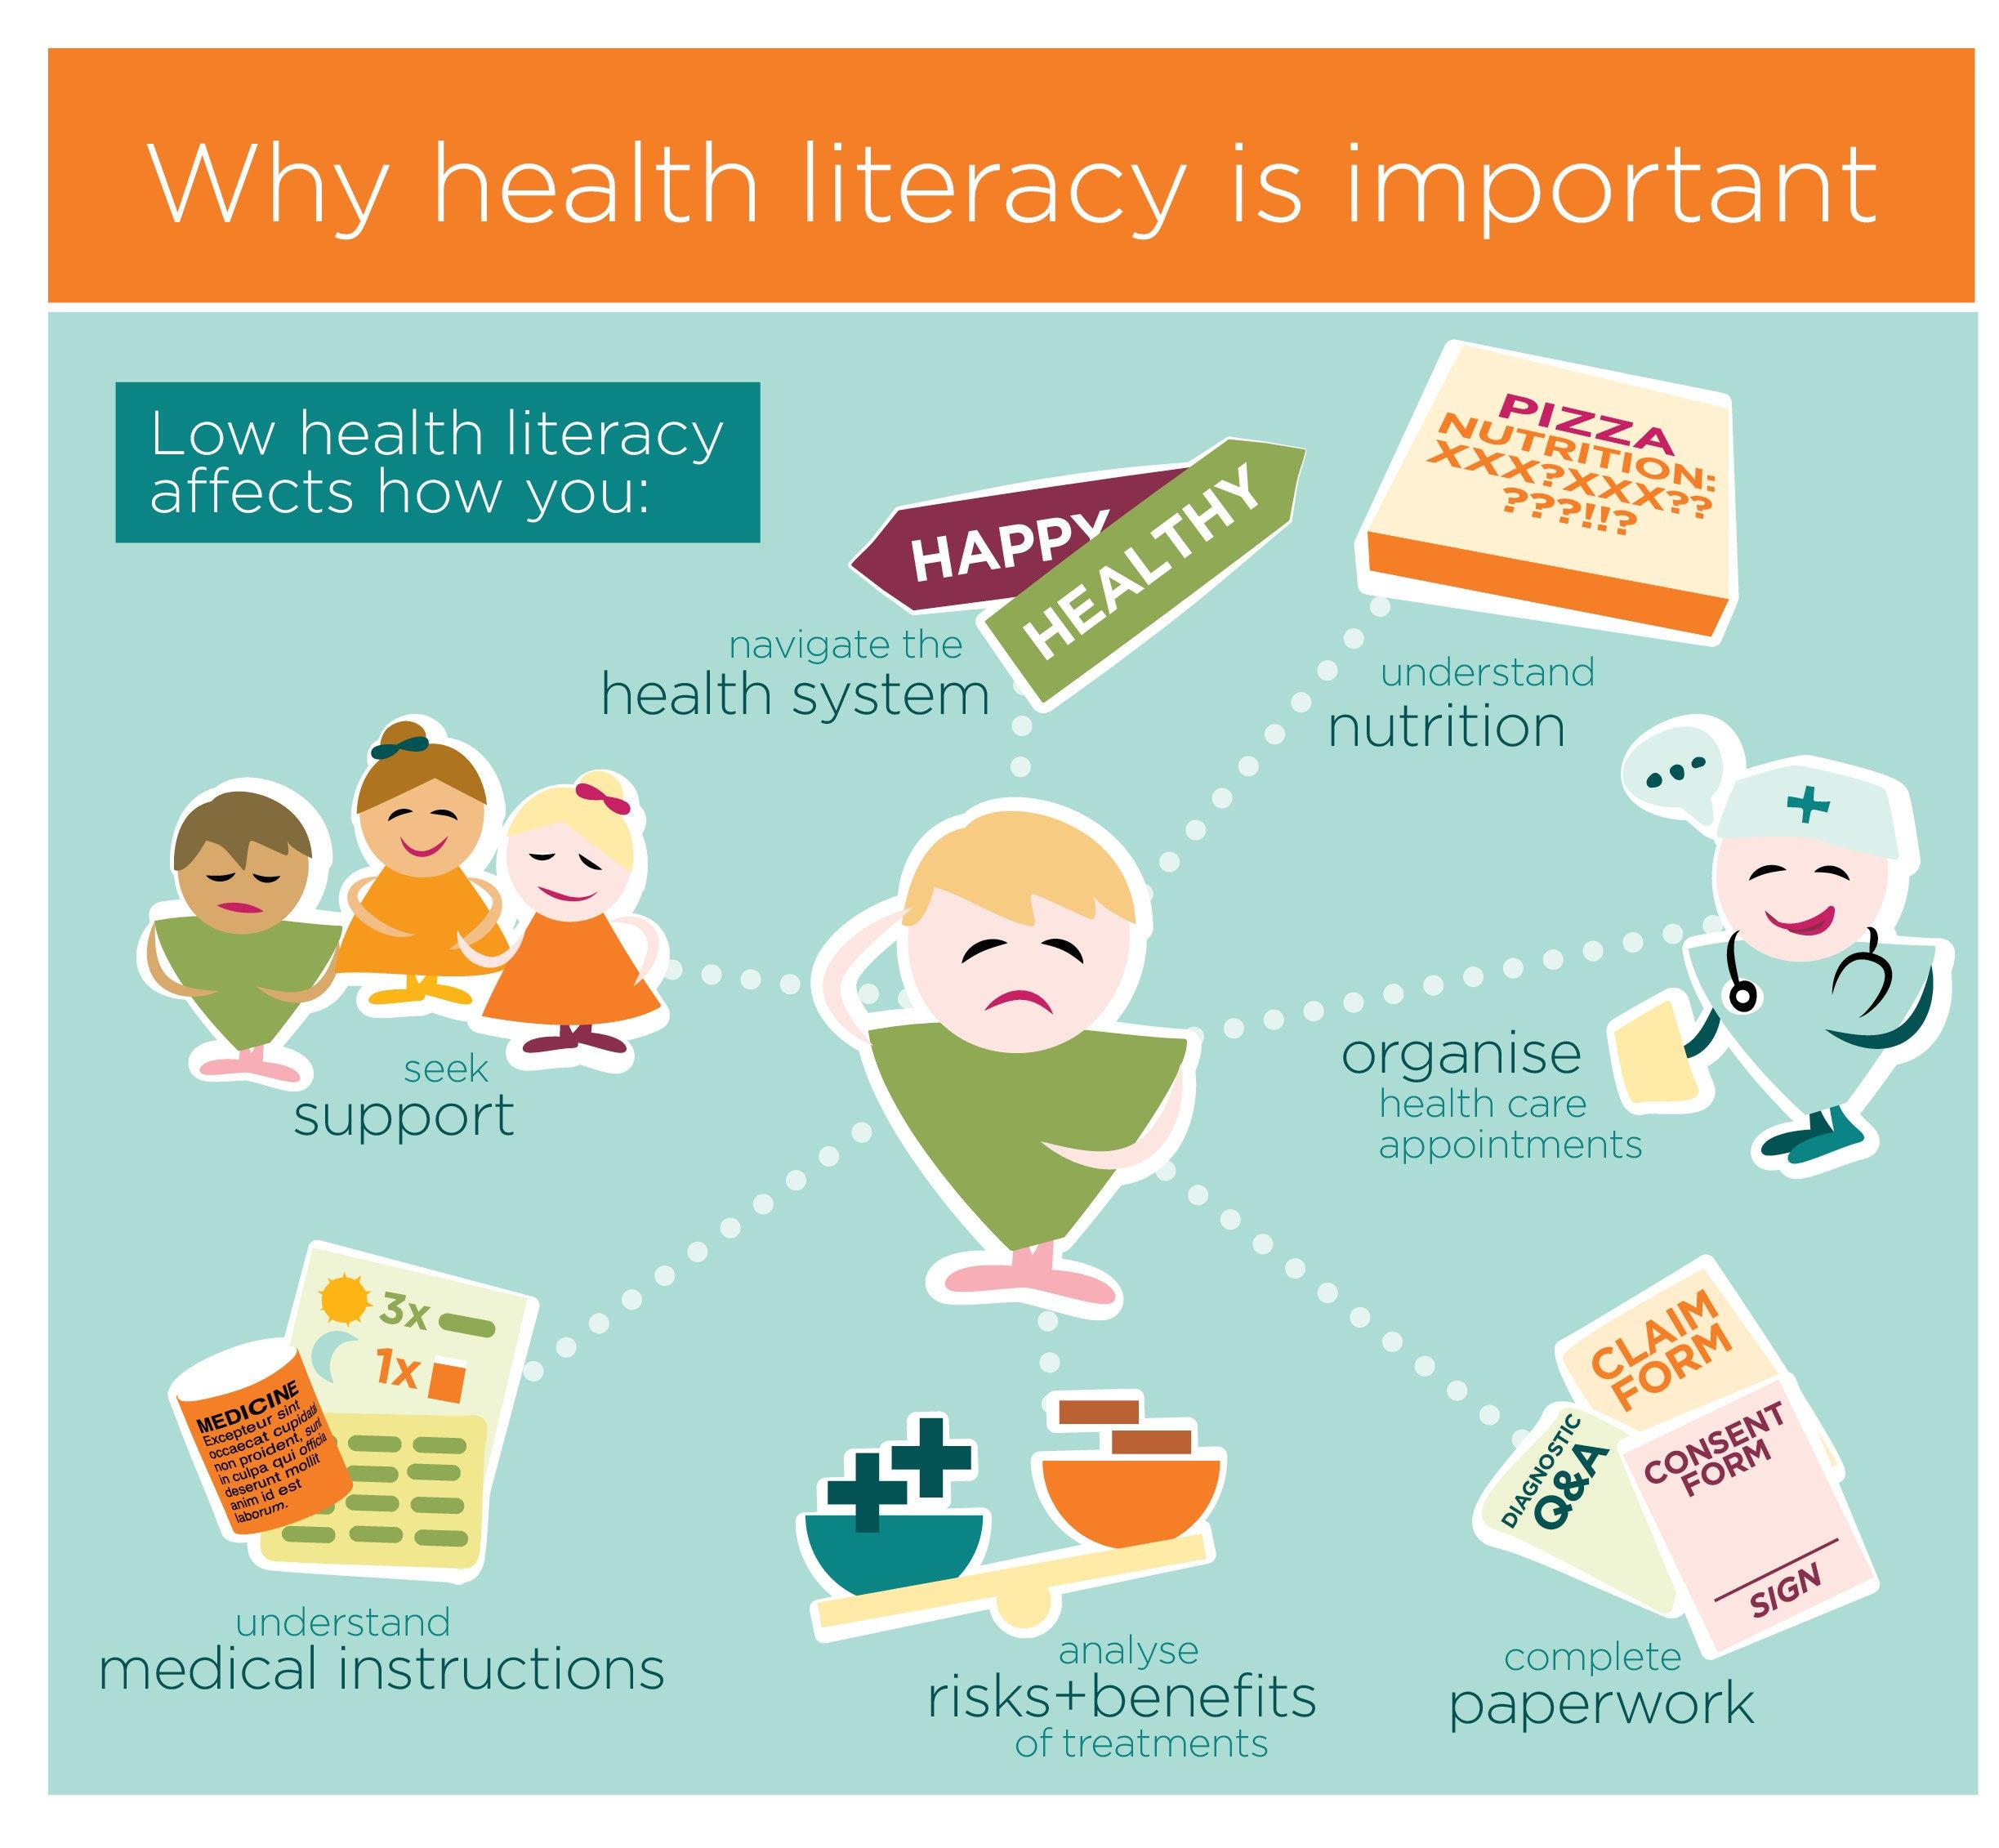 Relationship between literacy and healthcare is